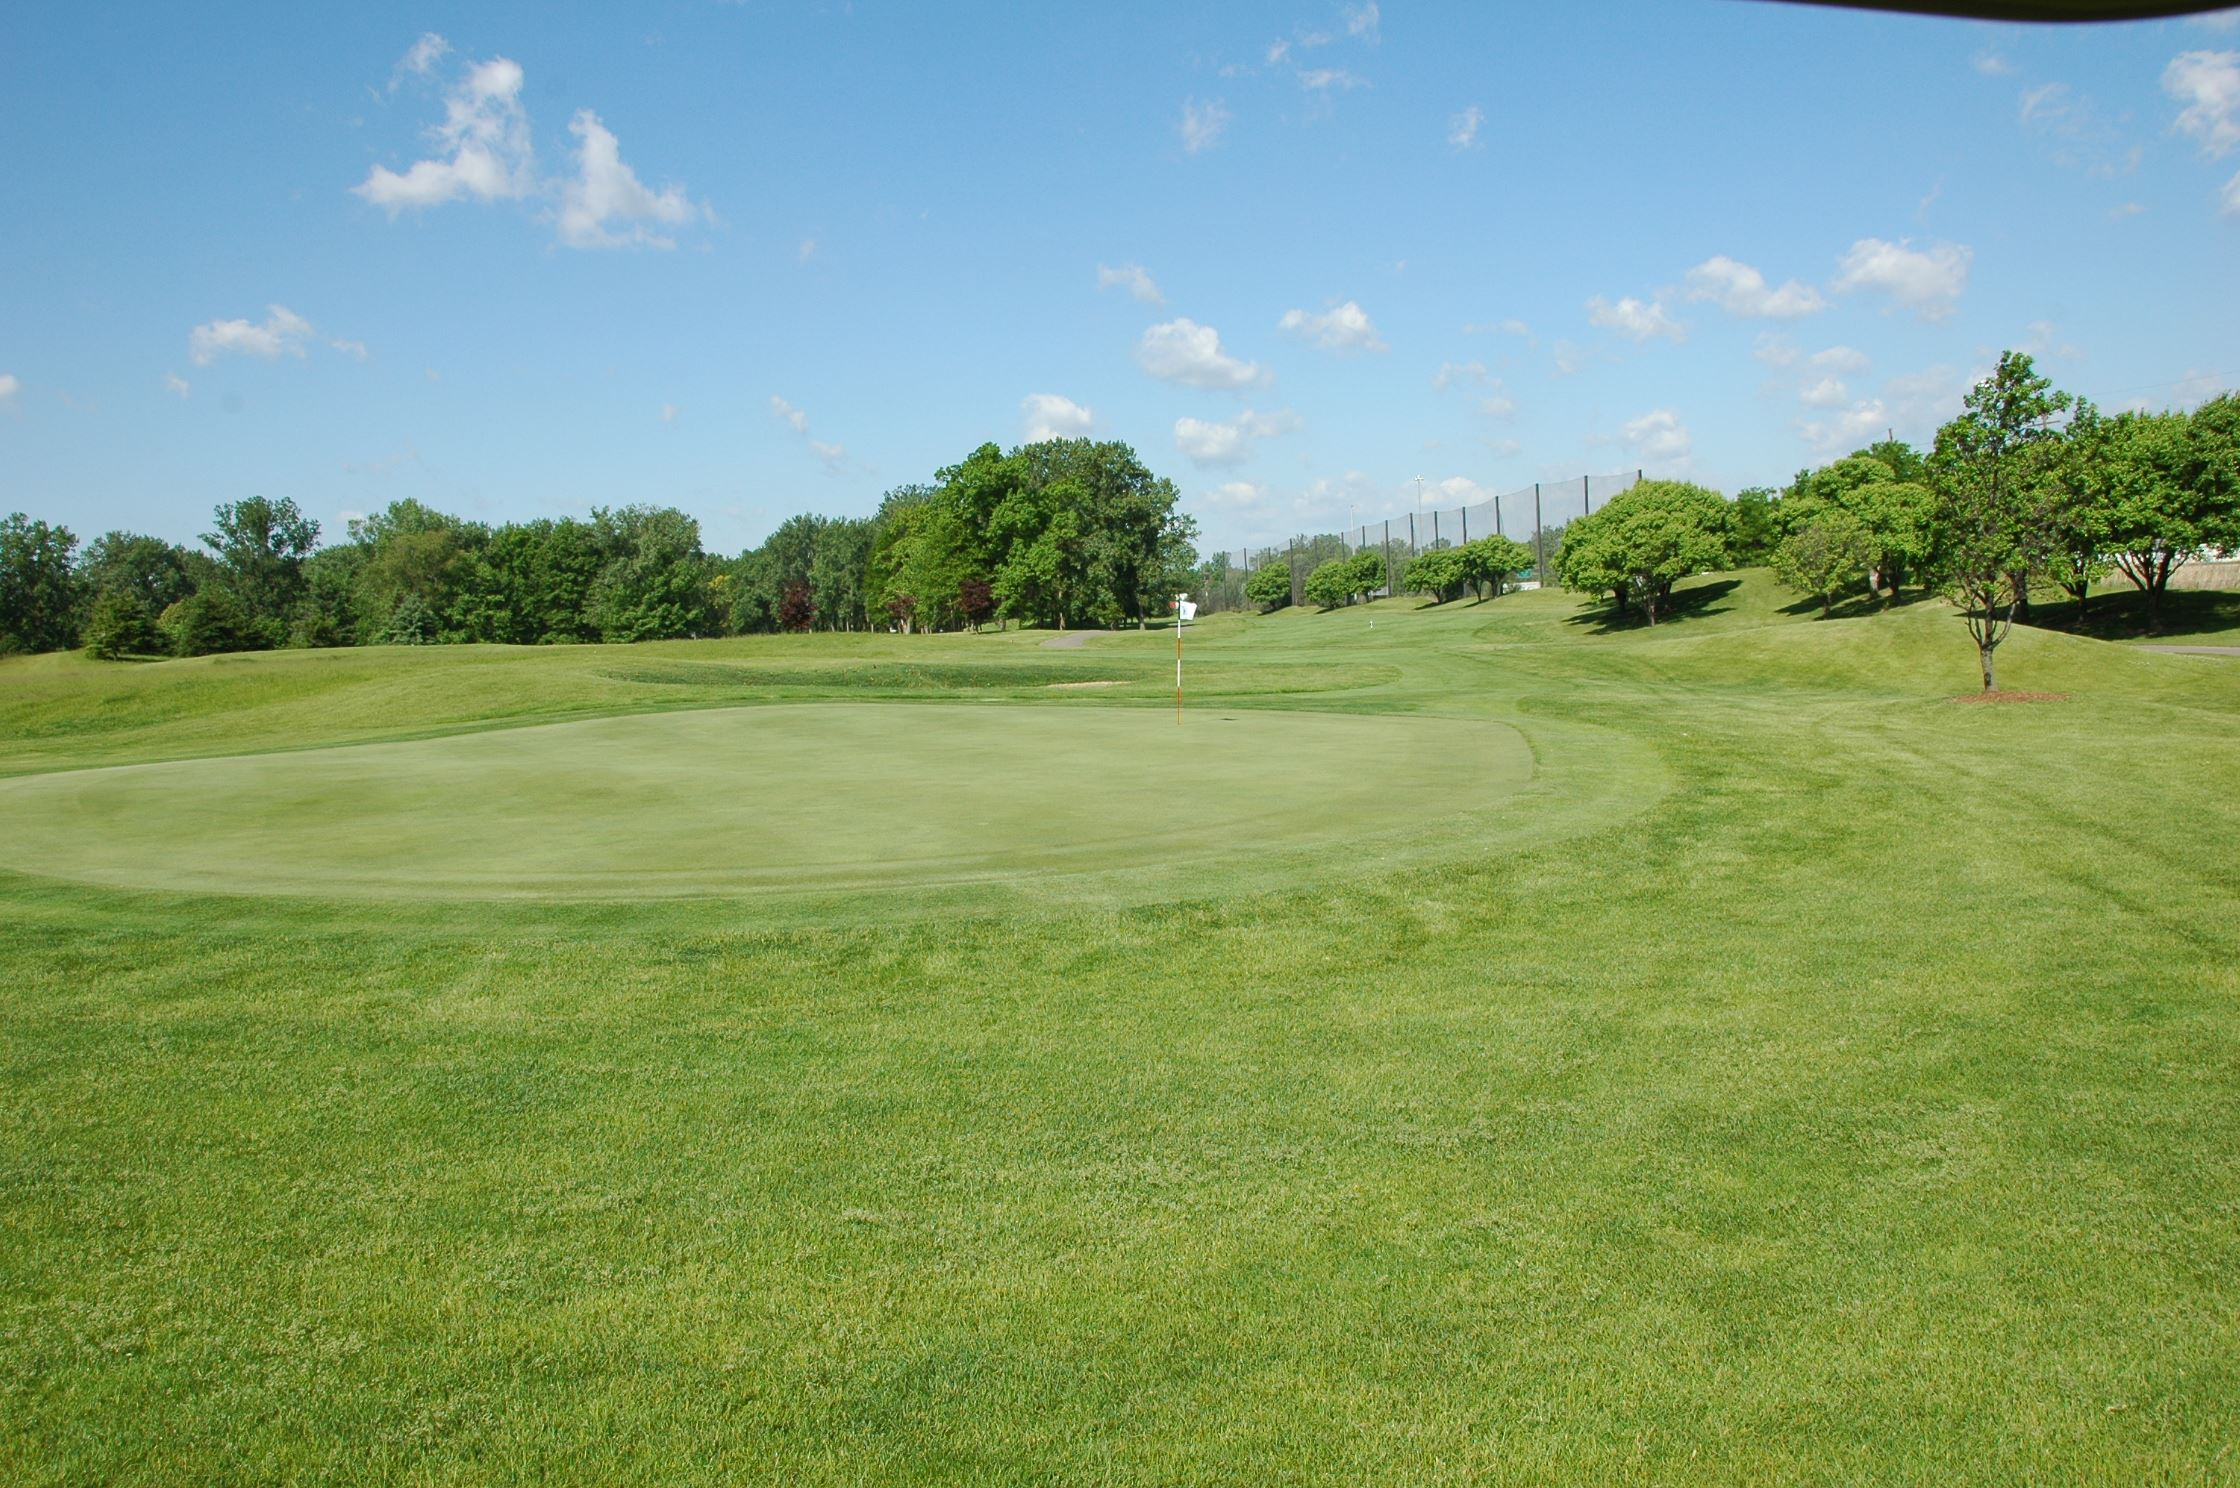 A view of the beautiful scenery of the Taylor Meadows Golf Course.